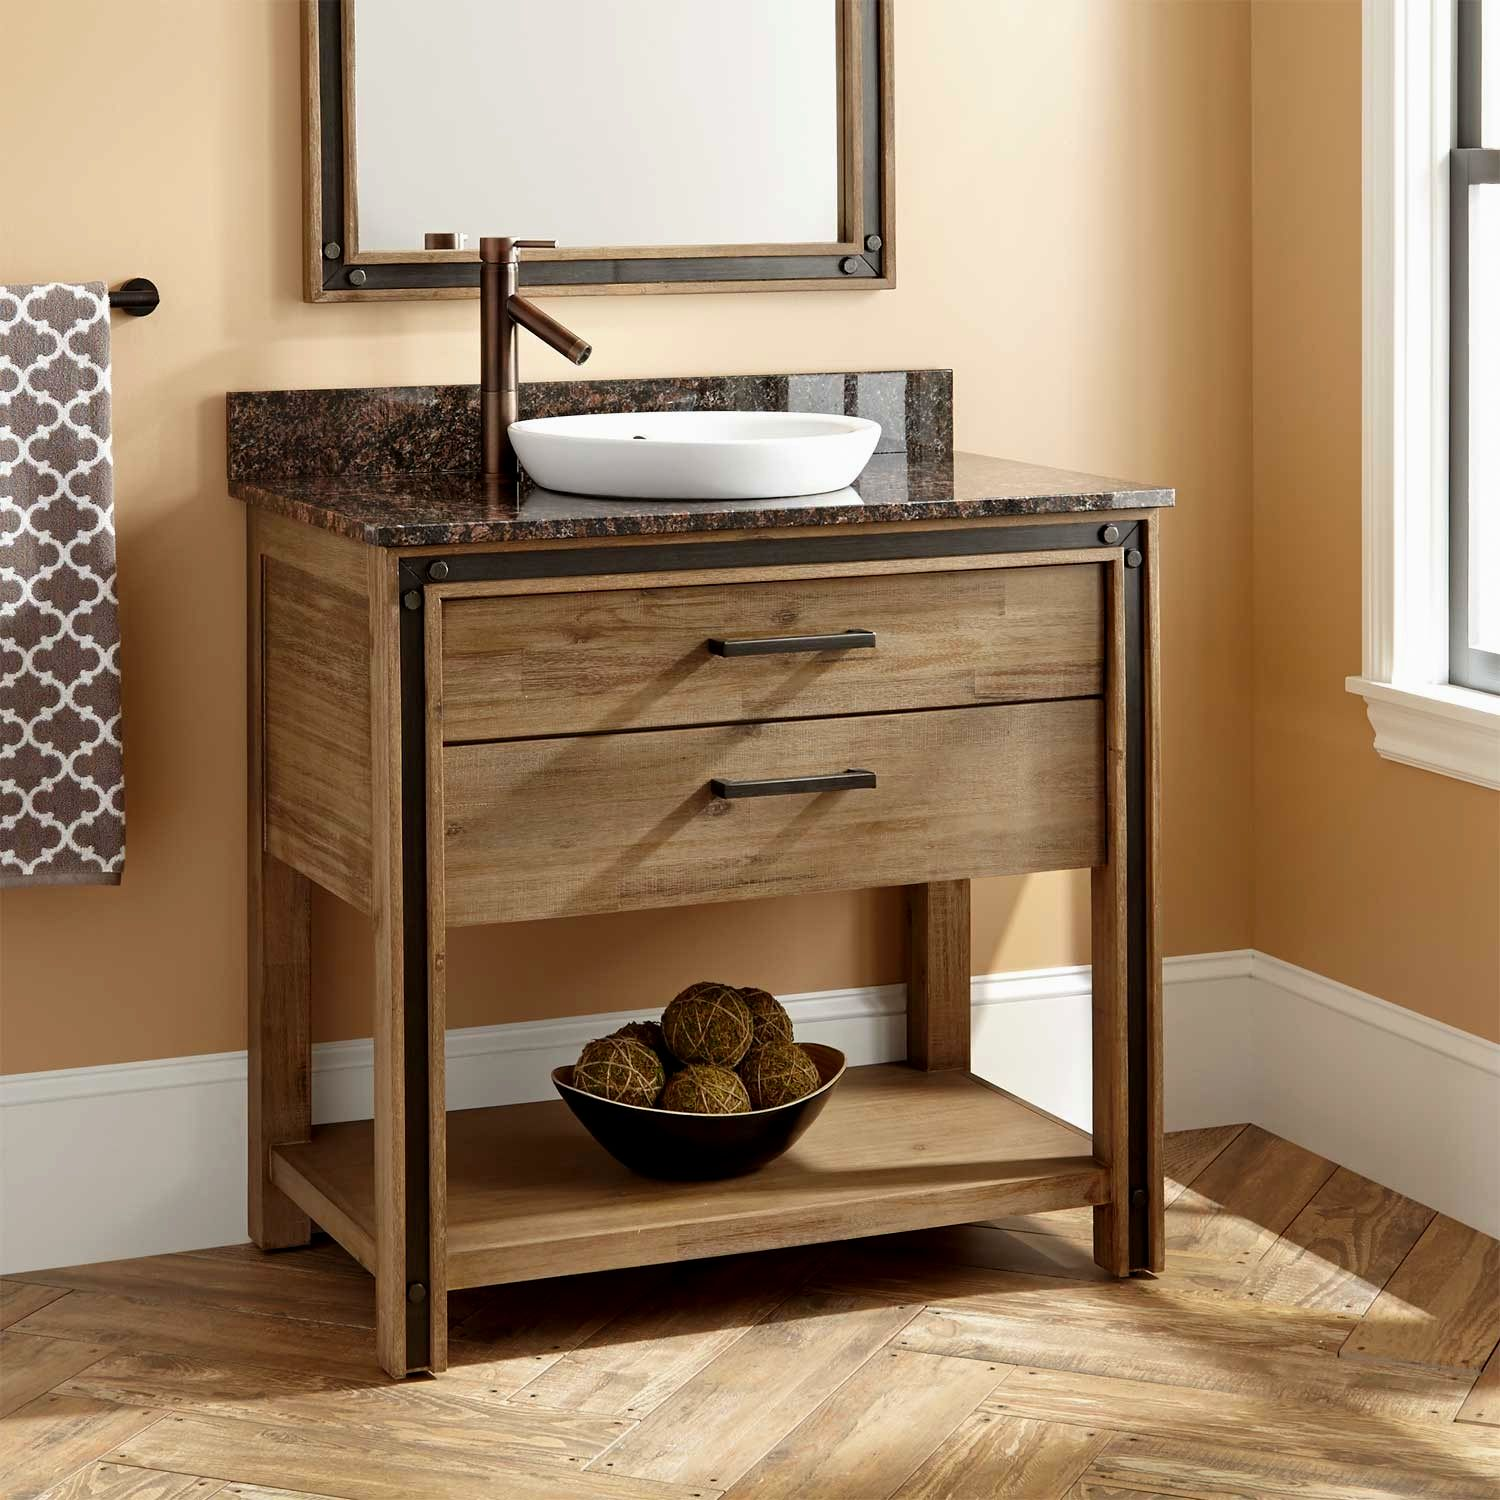 for vanity costco wood awesome quot of vanities new lovely attachment bathroom design benoist undermount kitchen pine sink cabinet reclaimed